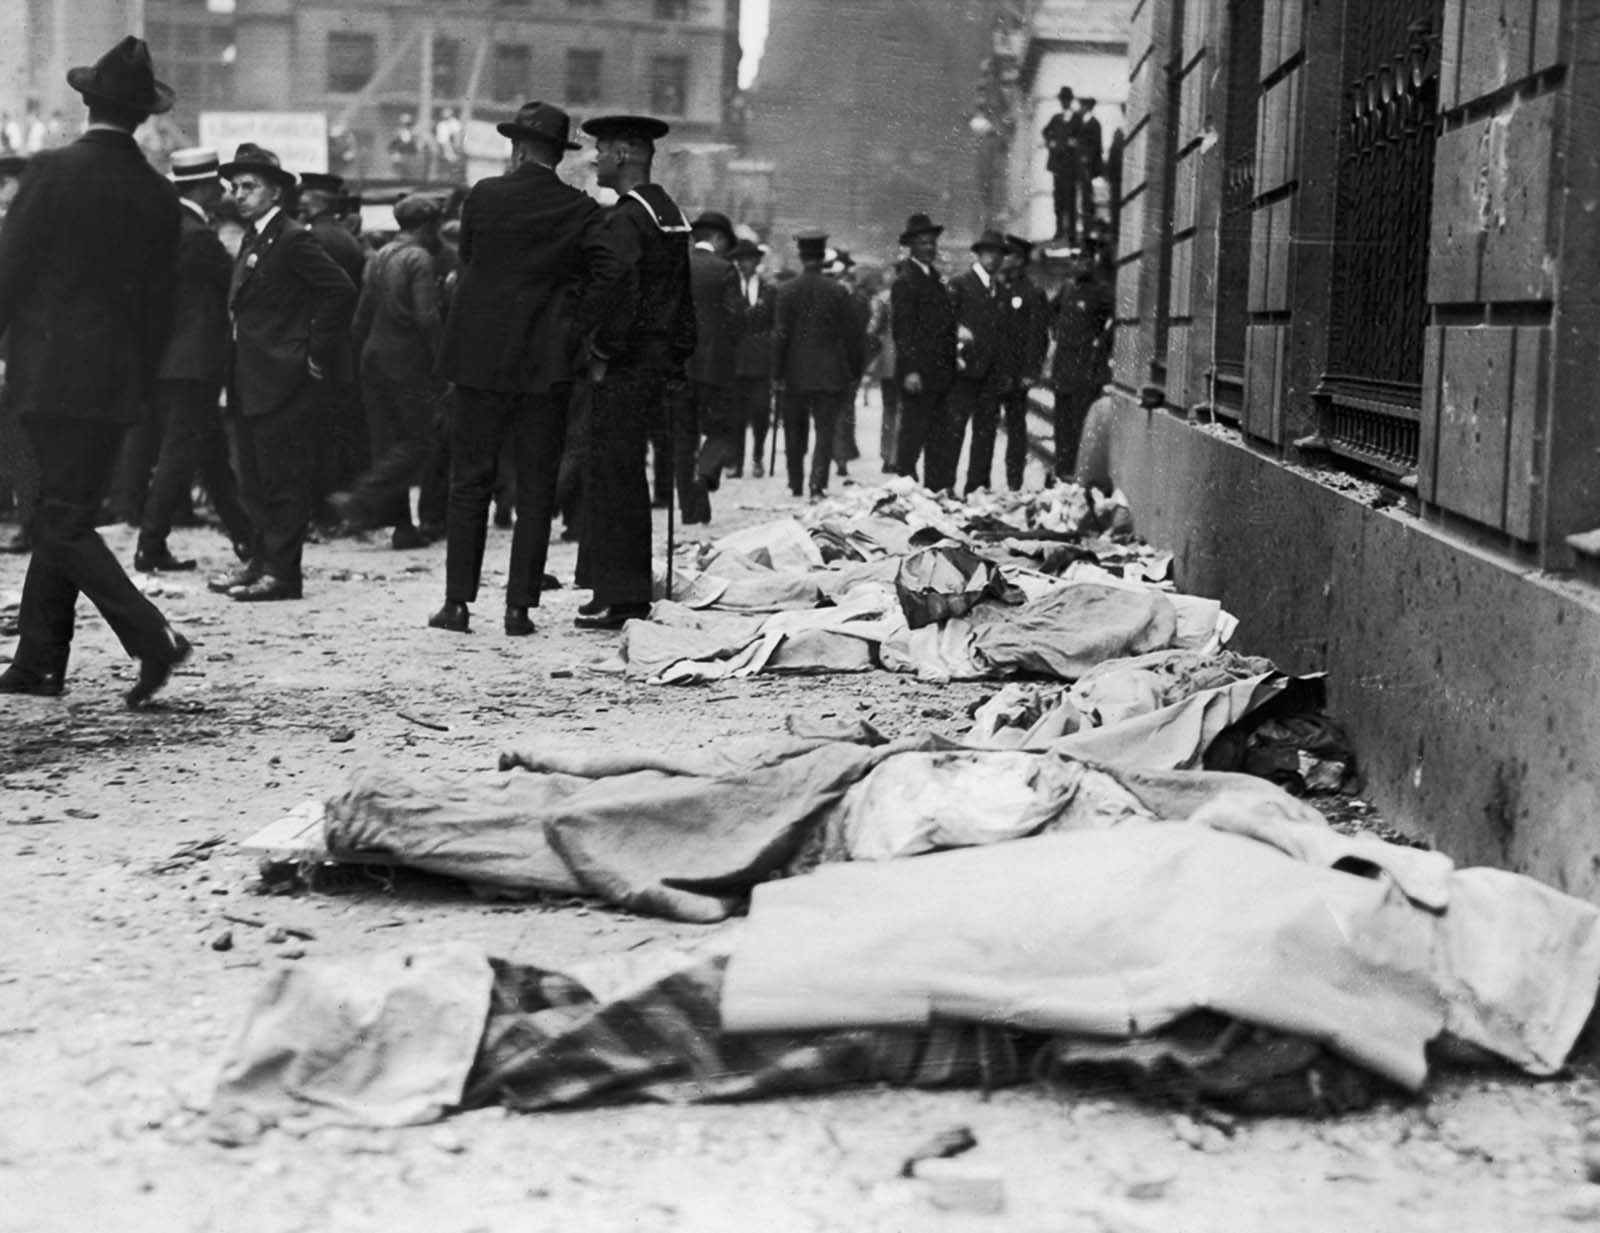 The Wall Street bomb killed more people than the 1910 bombing of the Los Angeles Times, which was the deadliest act of terrorism on U.S. soil up to that point.